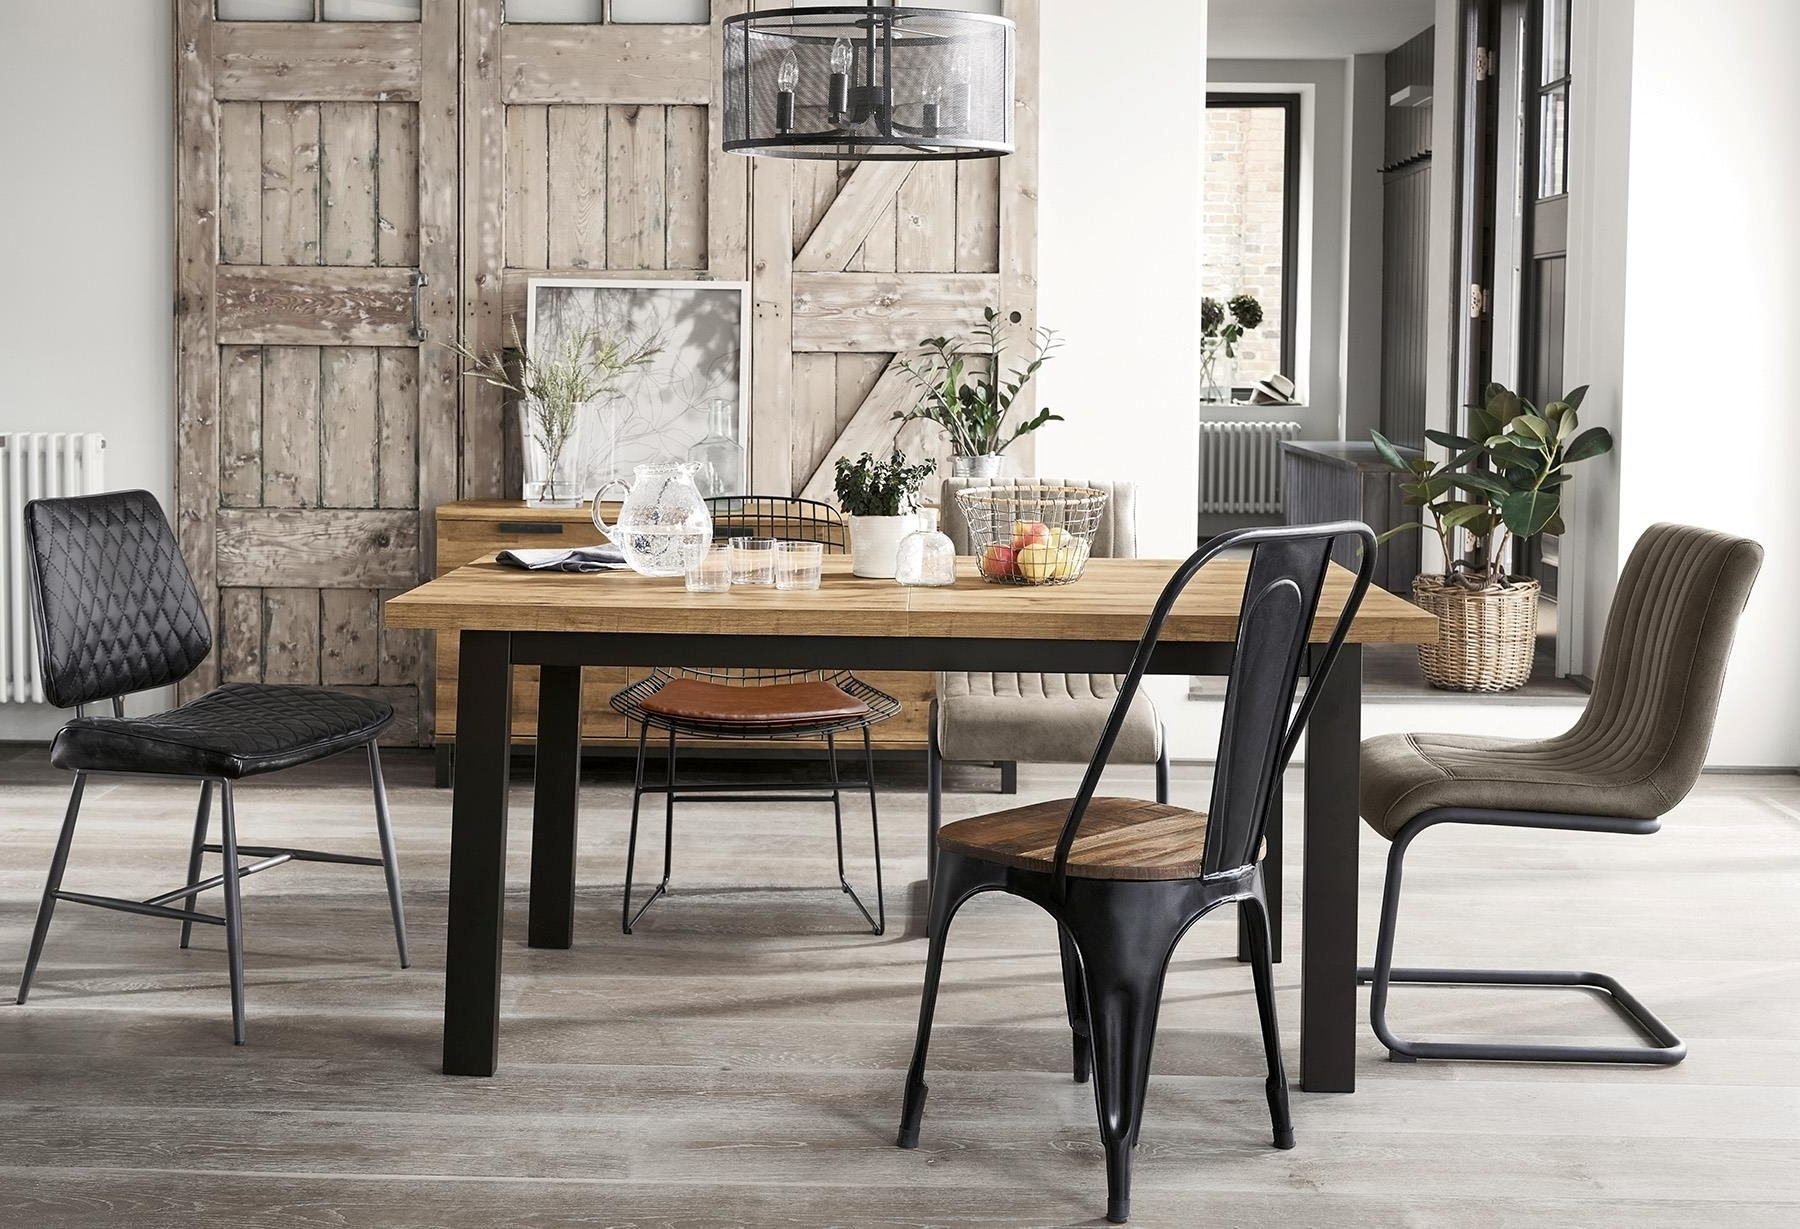 8 Seater Dining Tables And Chairs throughout 2018 Buy Bronx 6-8 Seater Extending Dining Table From The Next Uk Online